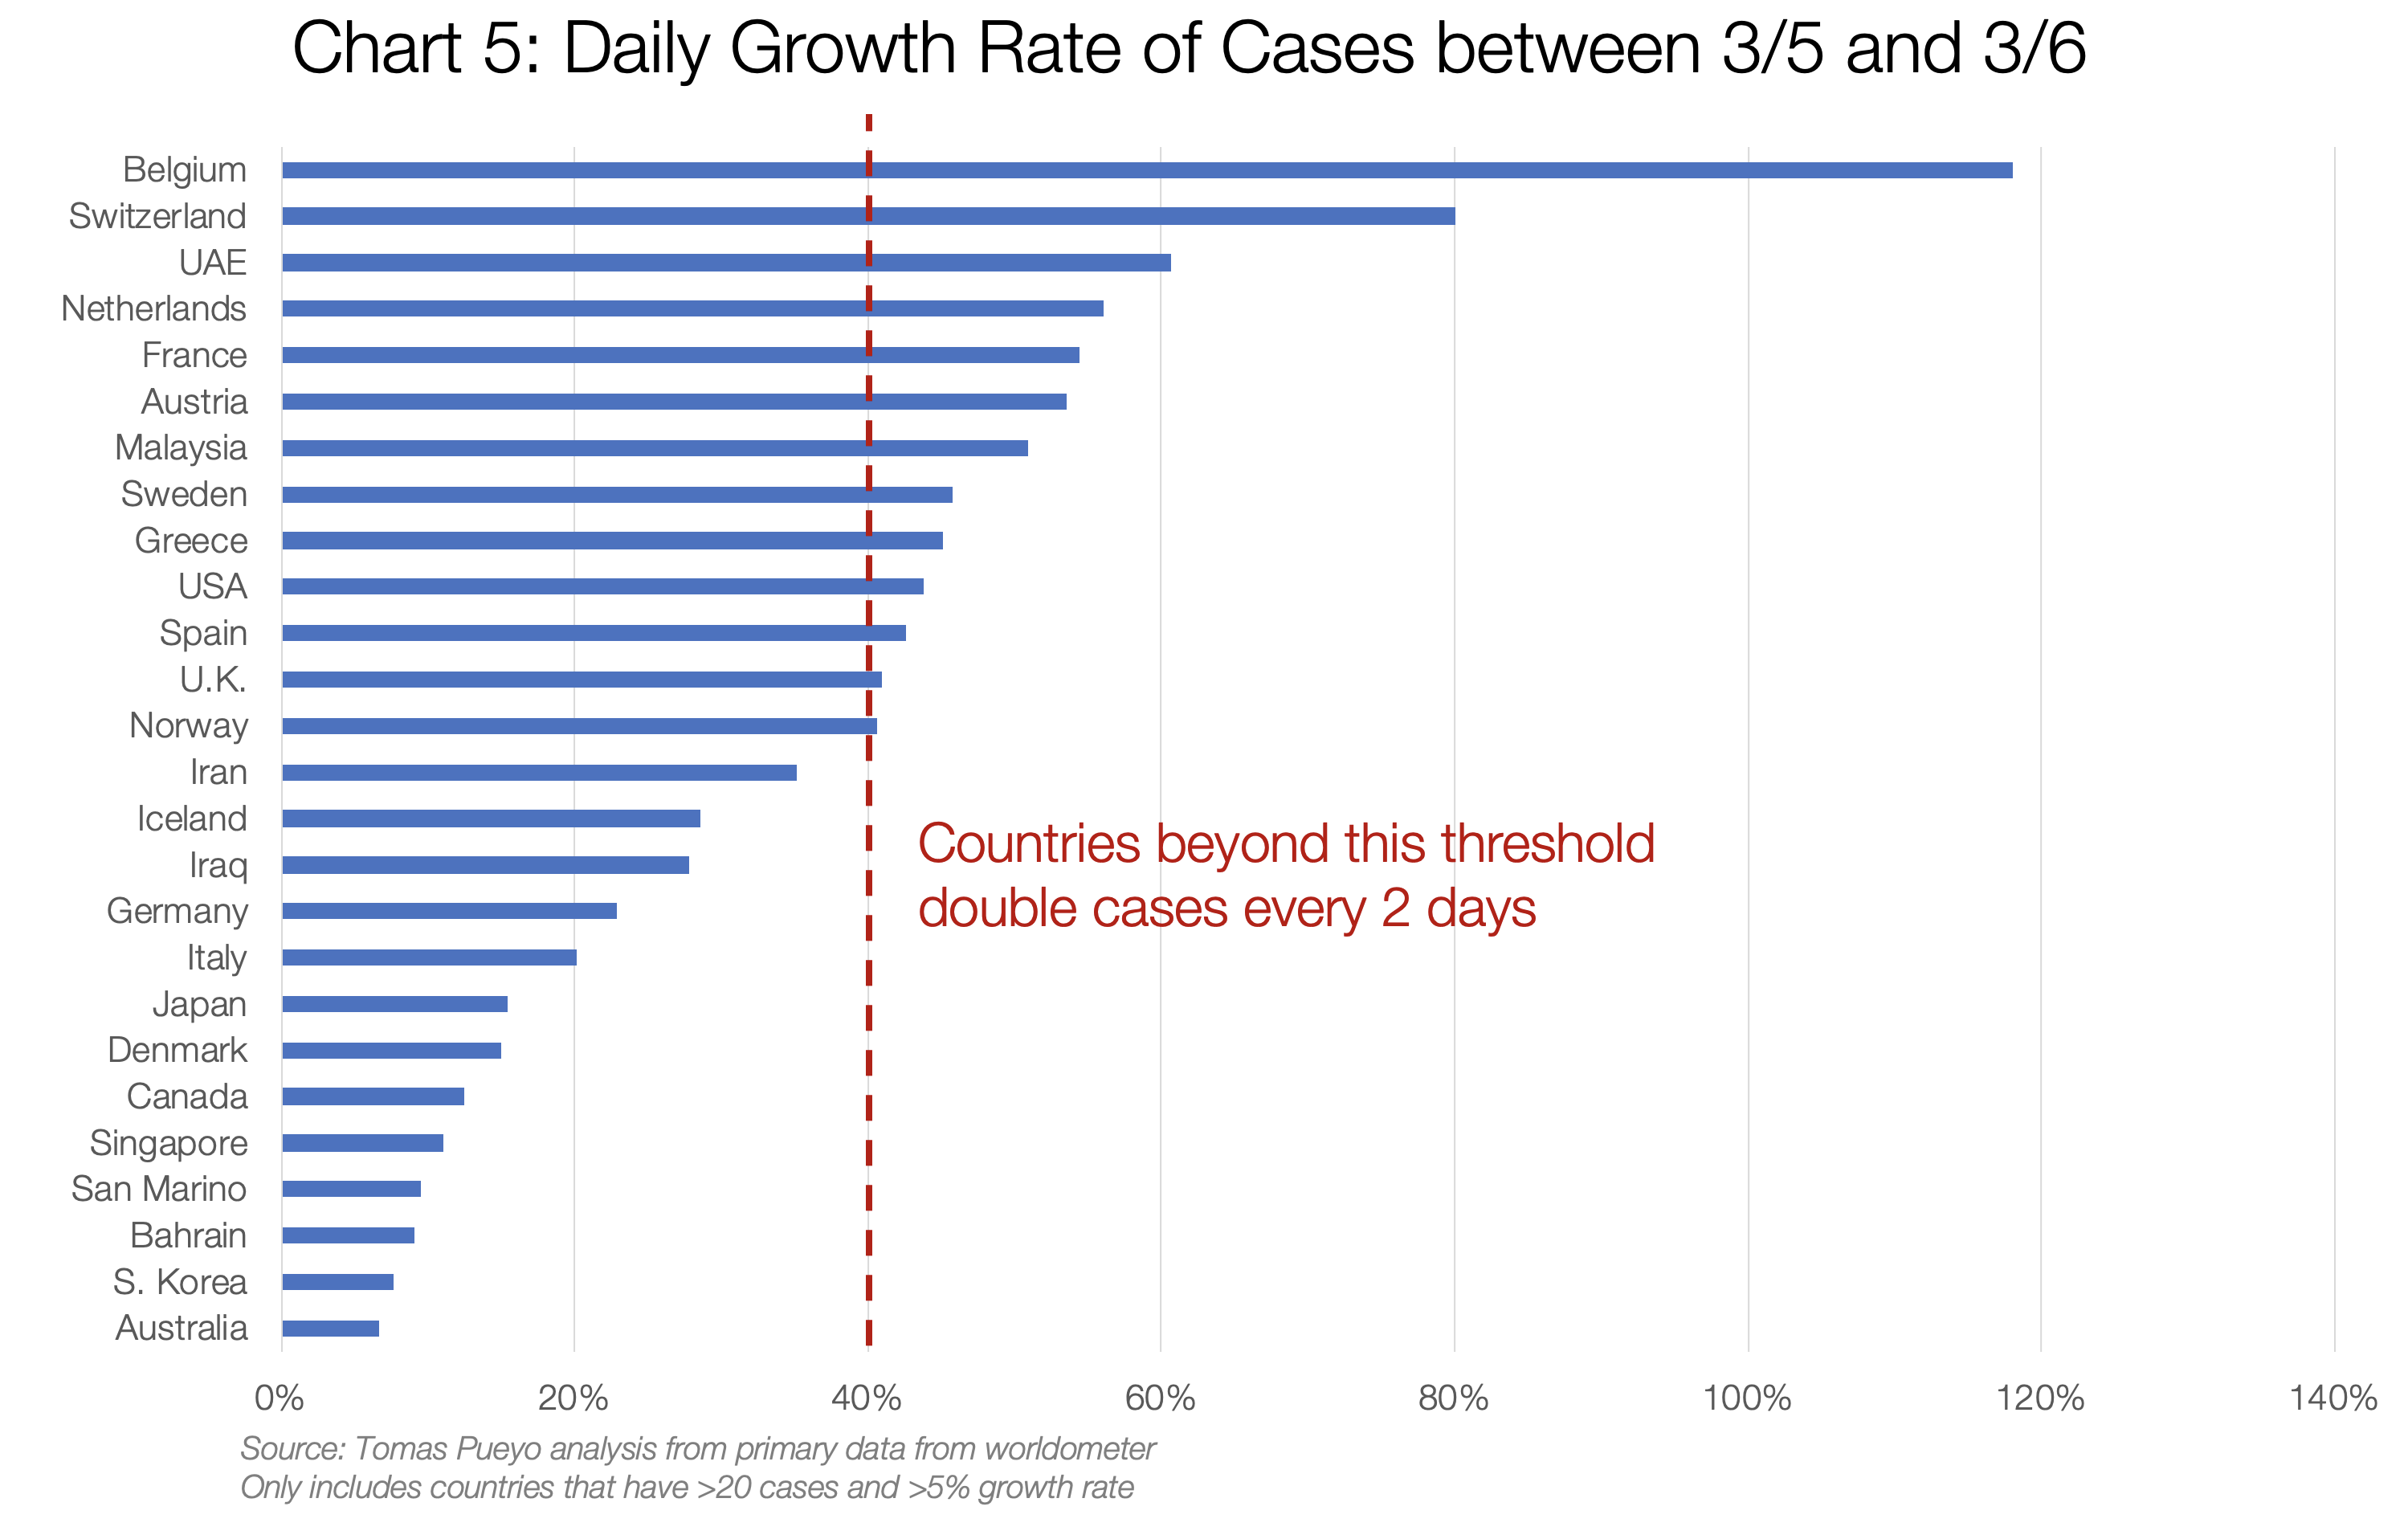 5. Daily Growth Rate of Cases between